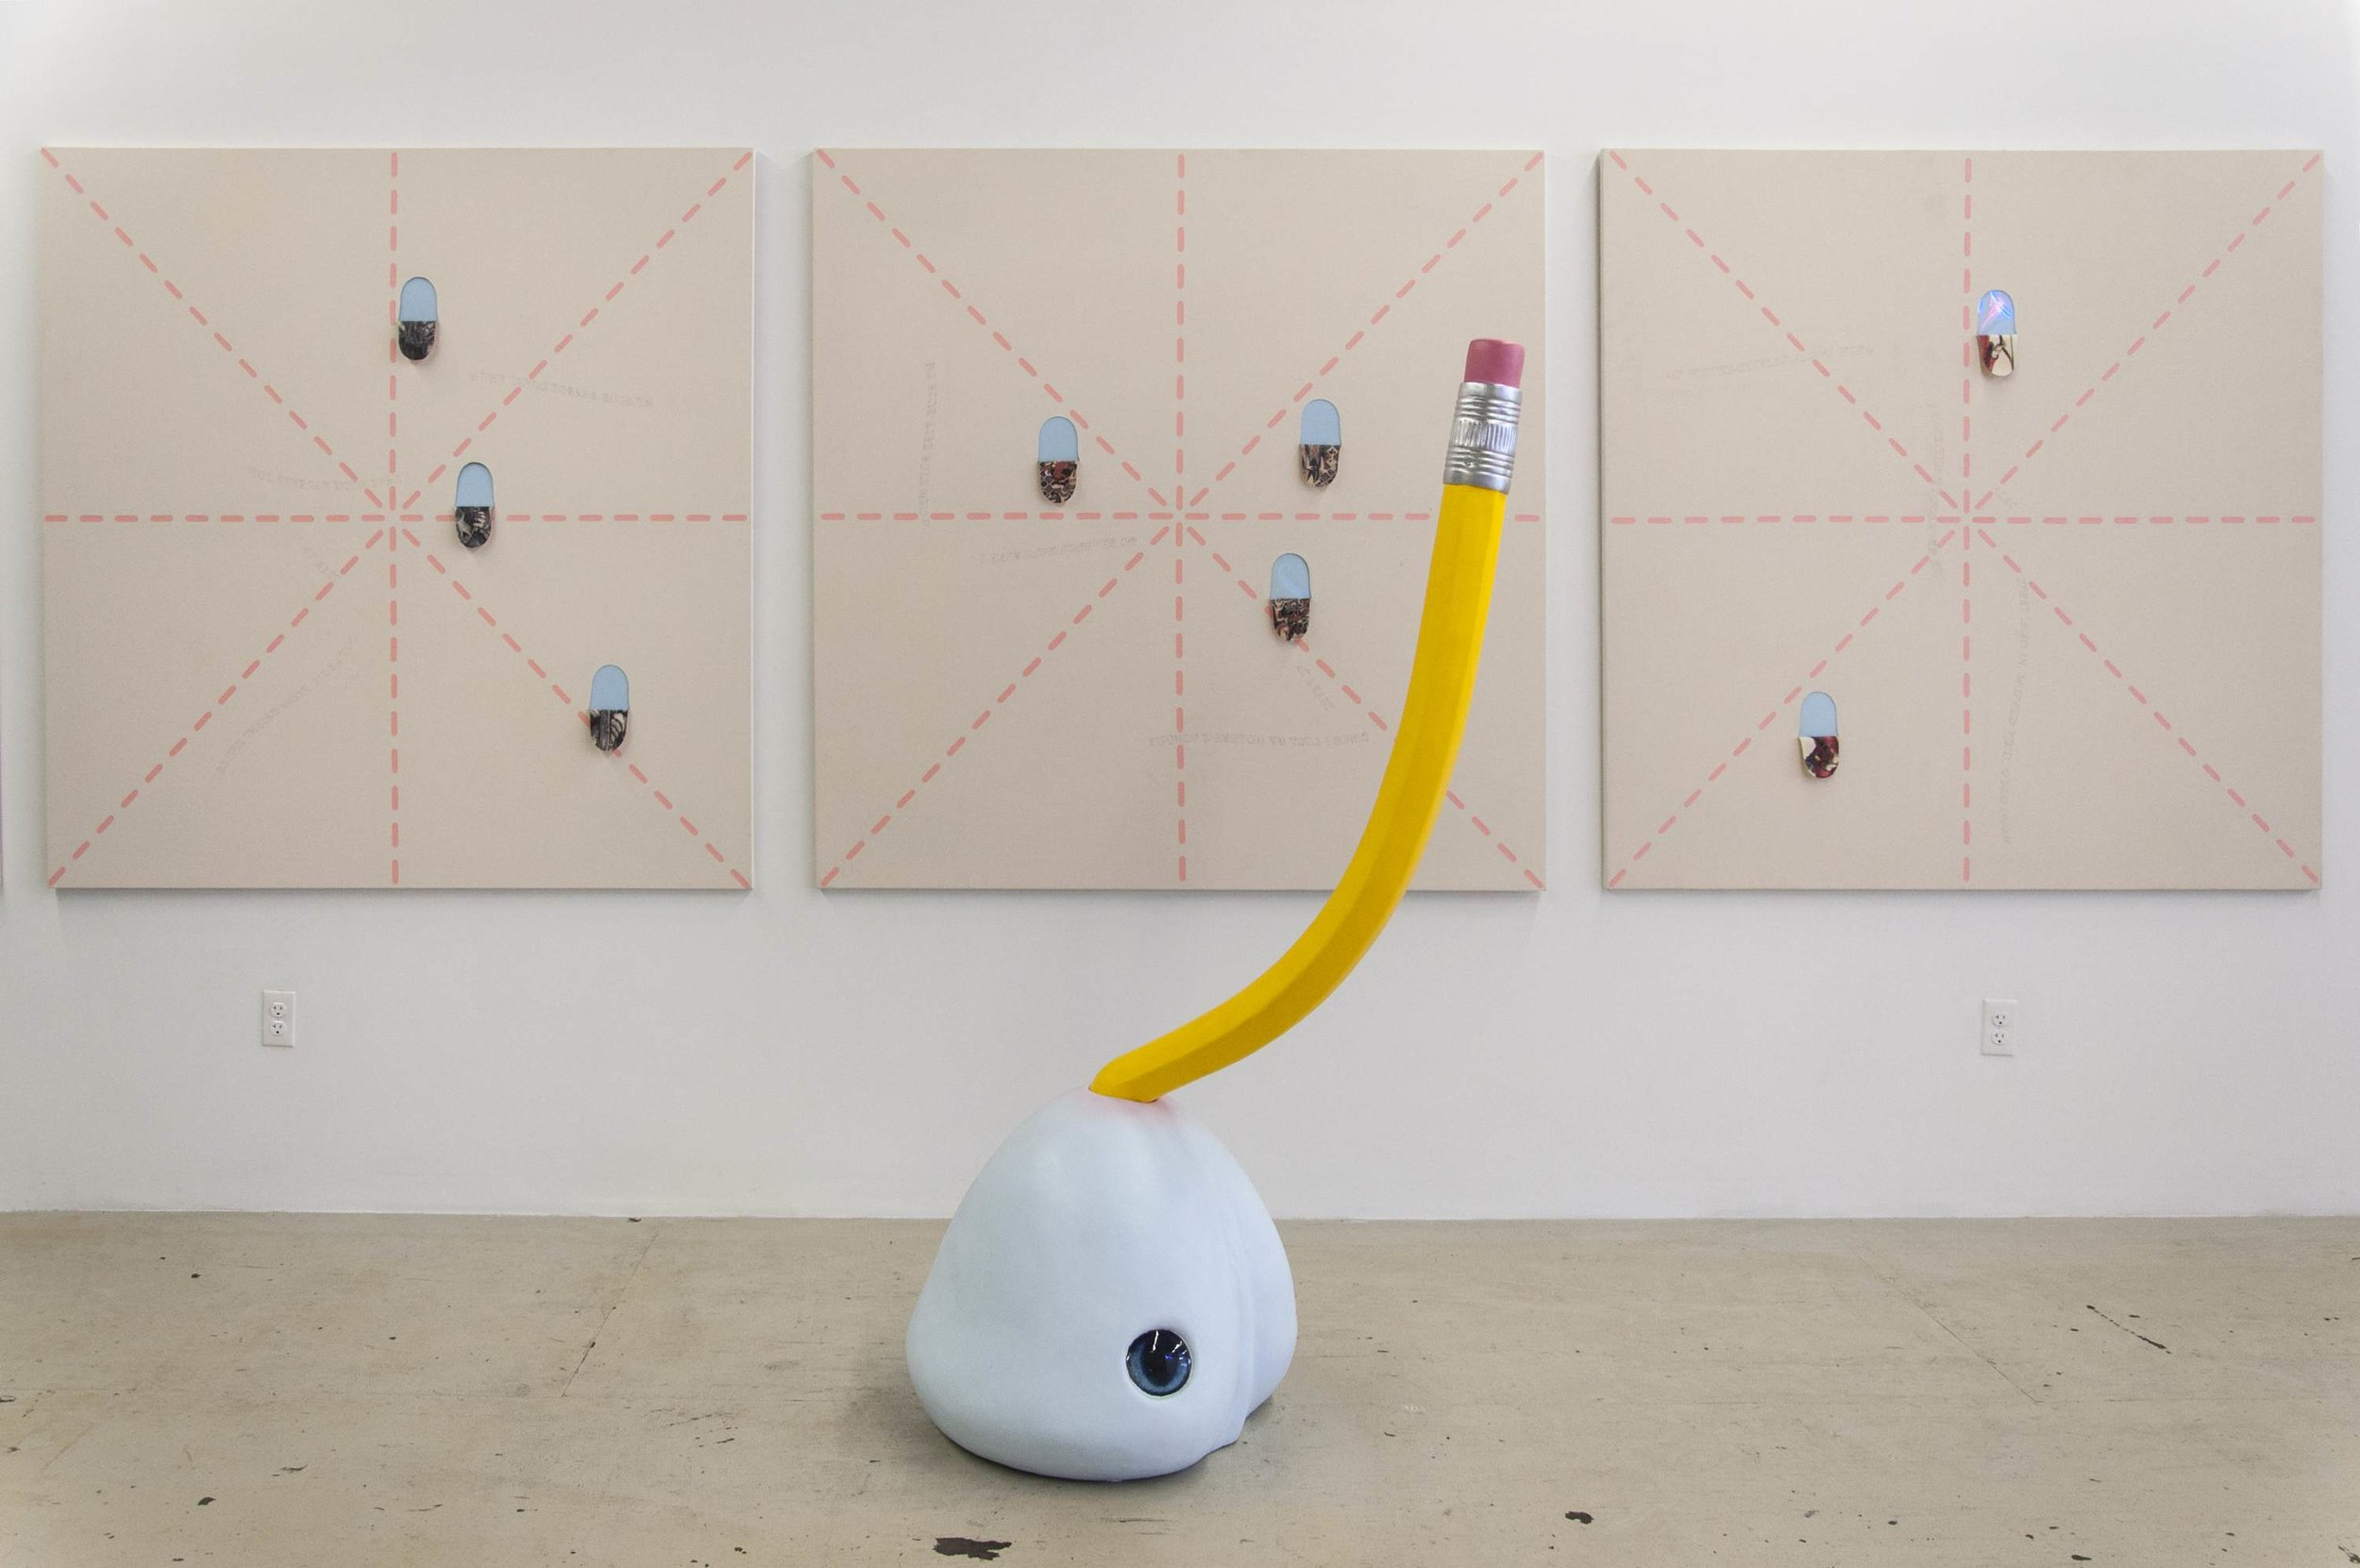 Installation View, Blue Boy Character Exercise, 2016